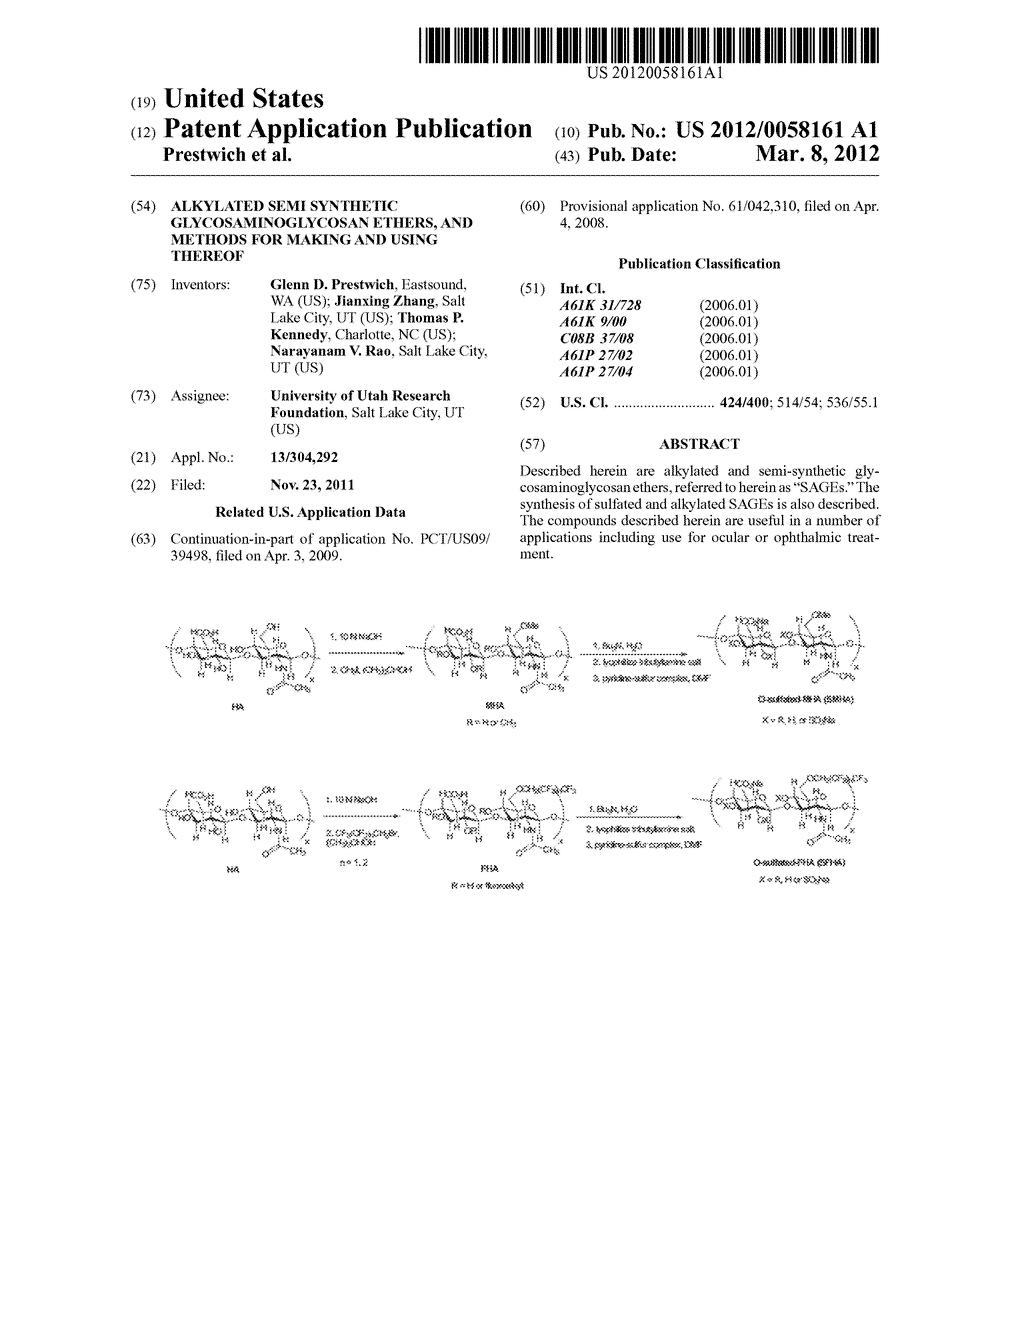 ALKYLATED SEMI SYNTHETIC GLYCOSAMINOGLYCOSAN ETHERS, AND METHODS FOR     MAKING AND USING THEREOF - diagram, schematic, and image 01